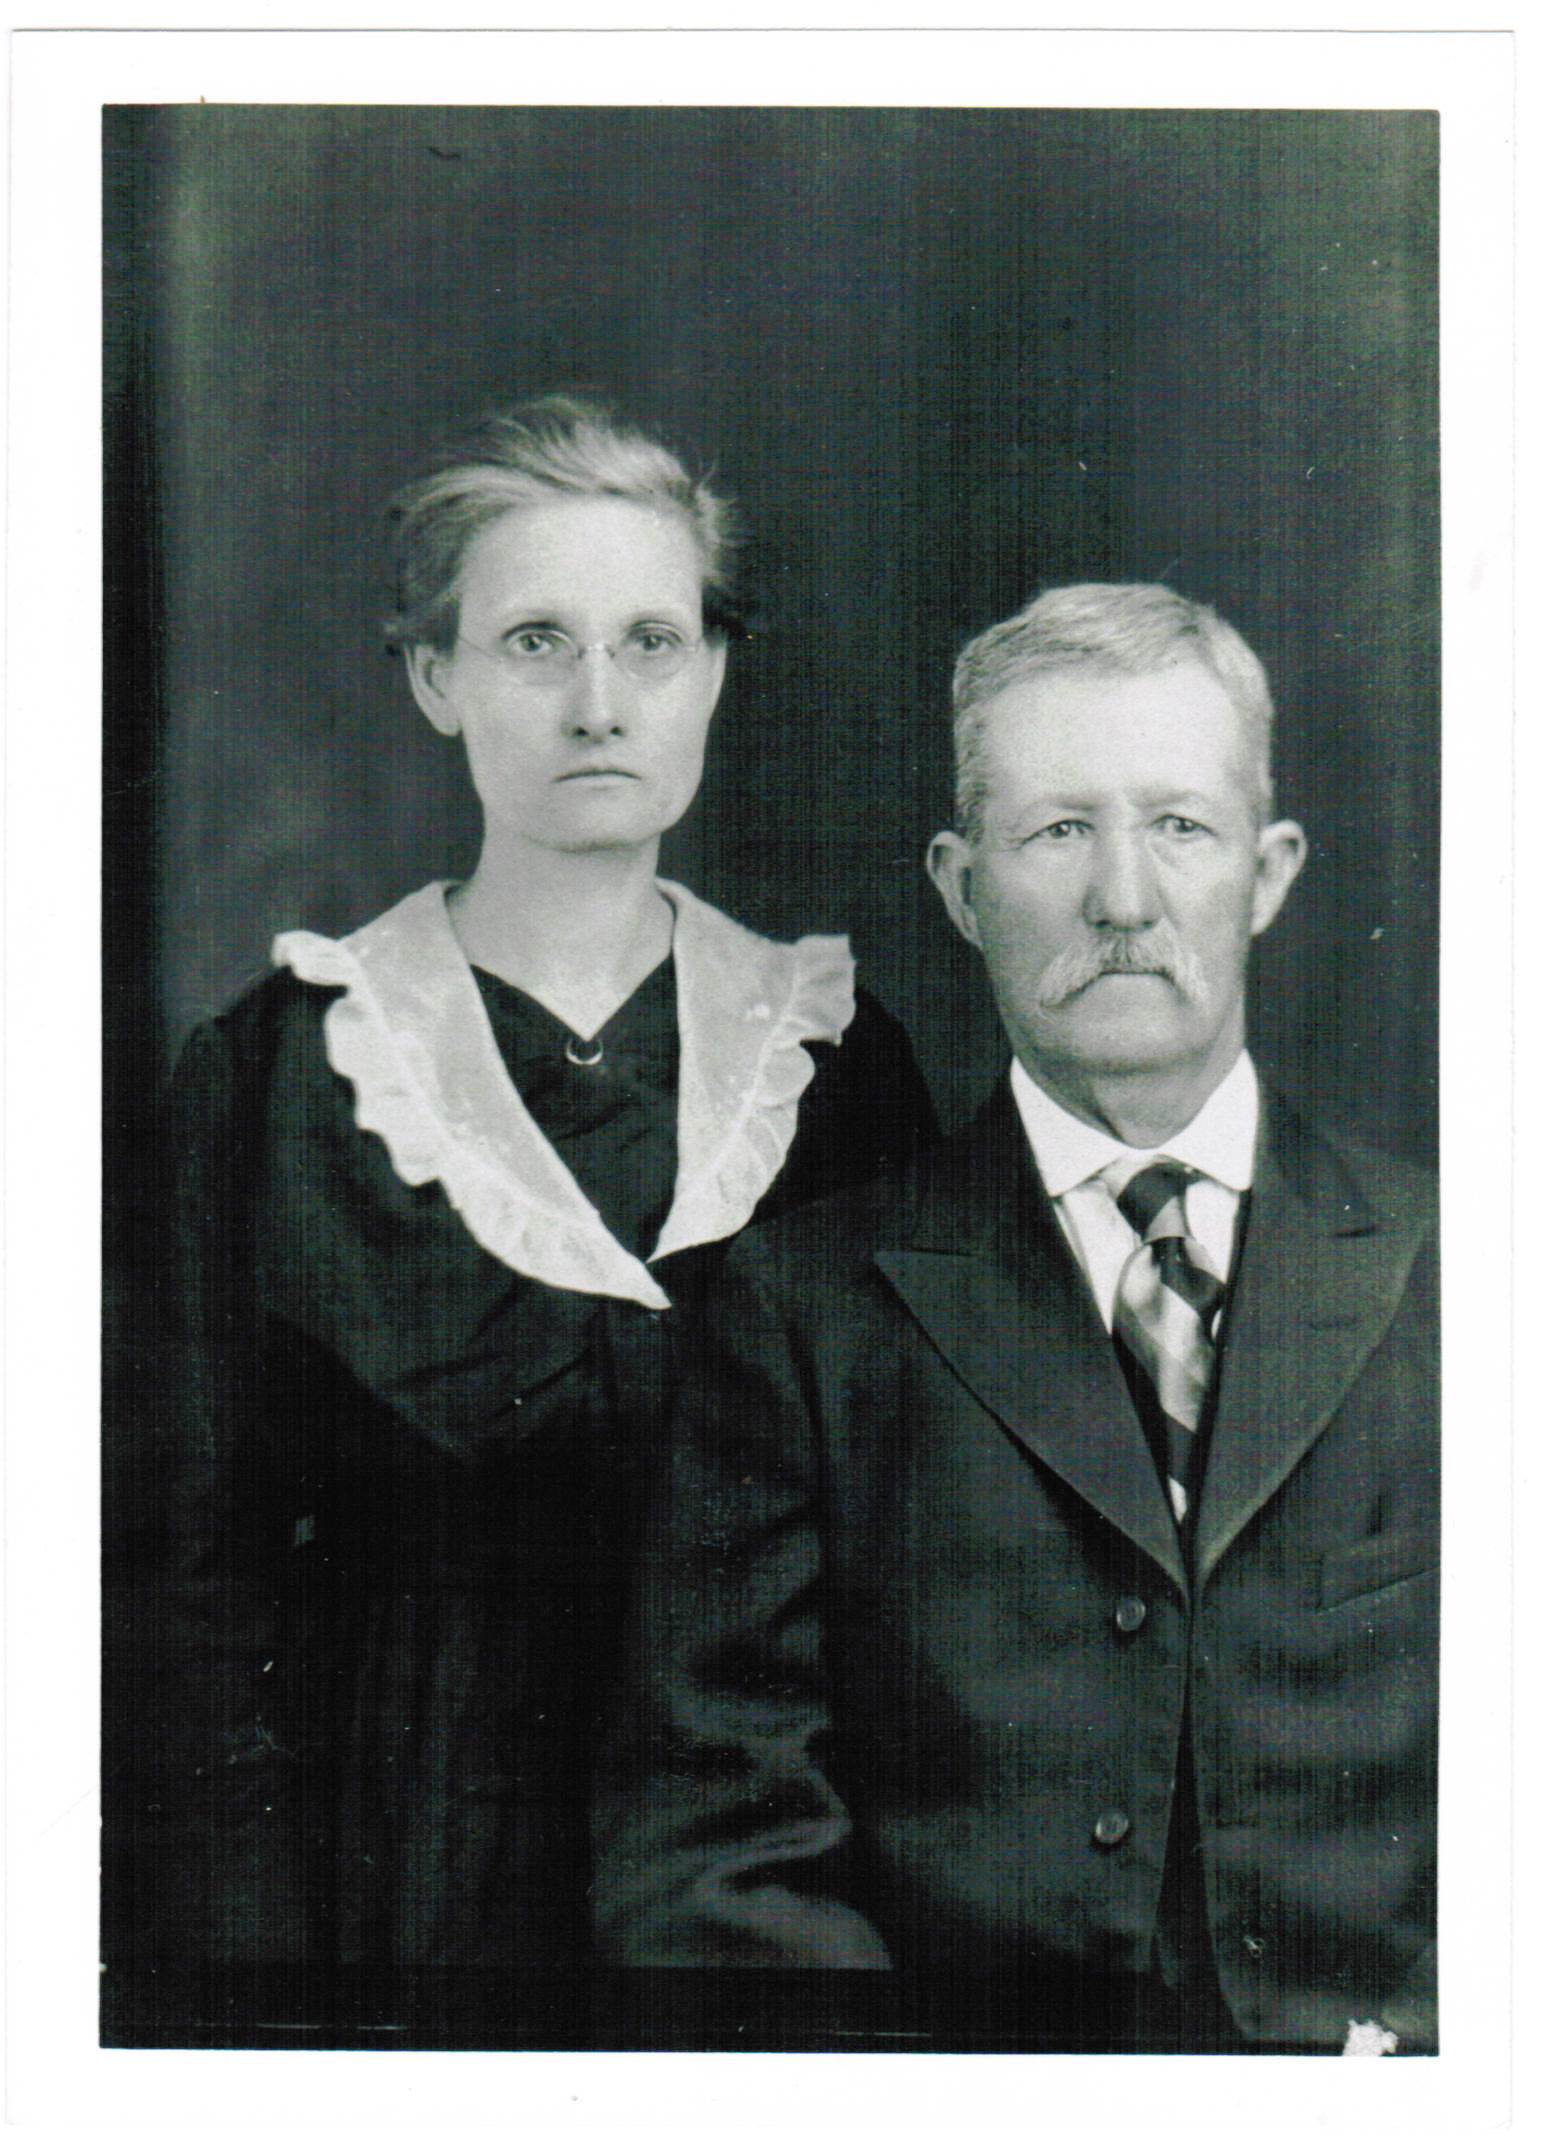 52 Ancestors Week 40 – Wilford Thomas, Another Early Death